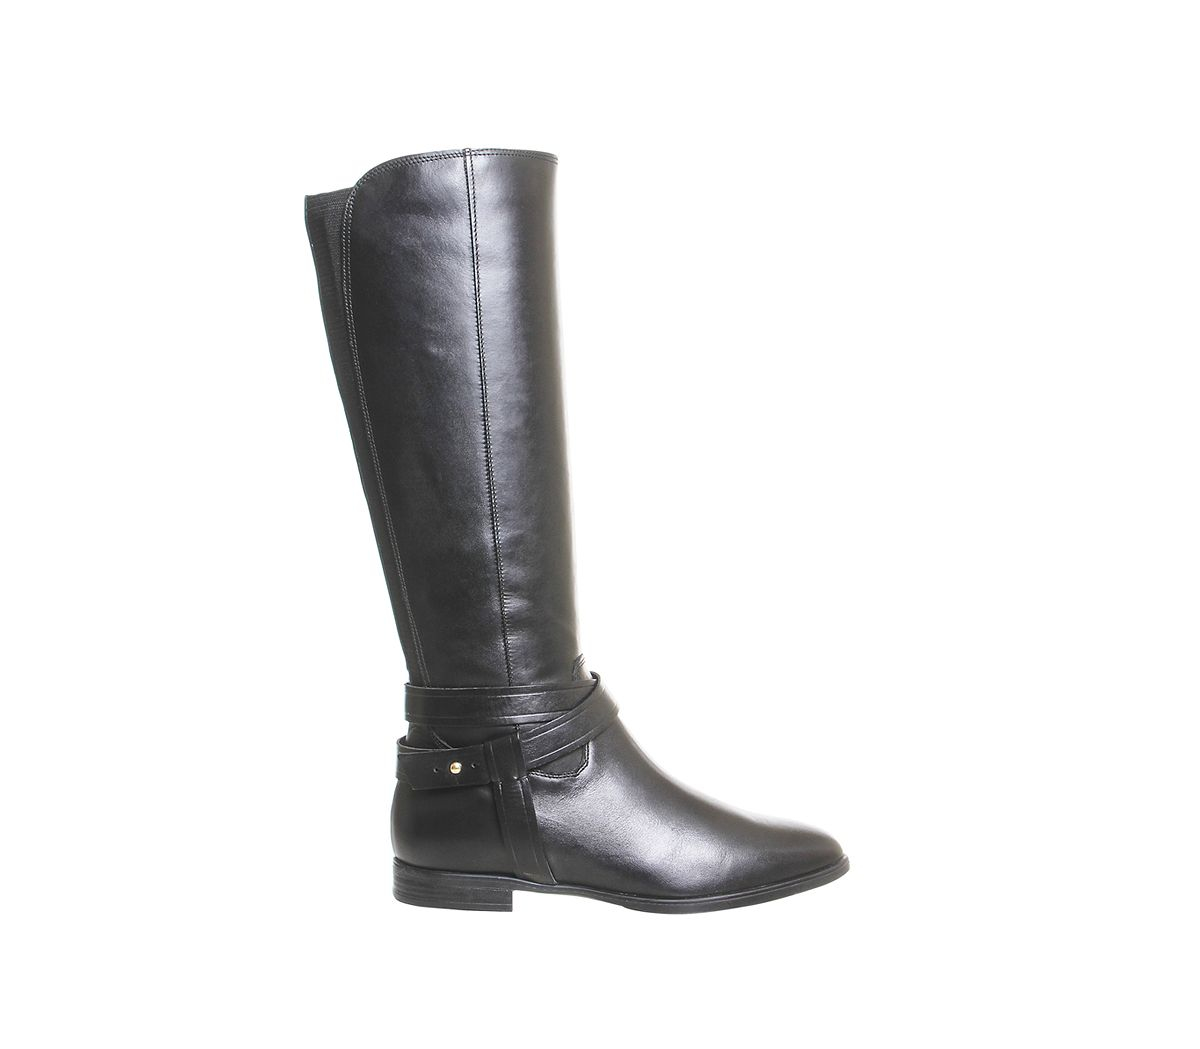 Office Leather Kingdom Cross Strap Rider Boots in Black Leather (Black)